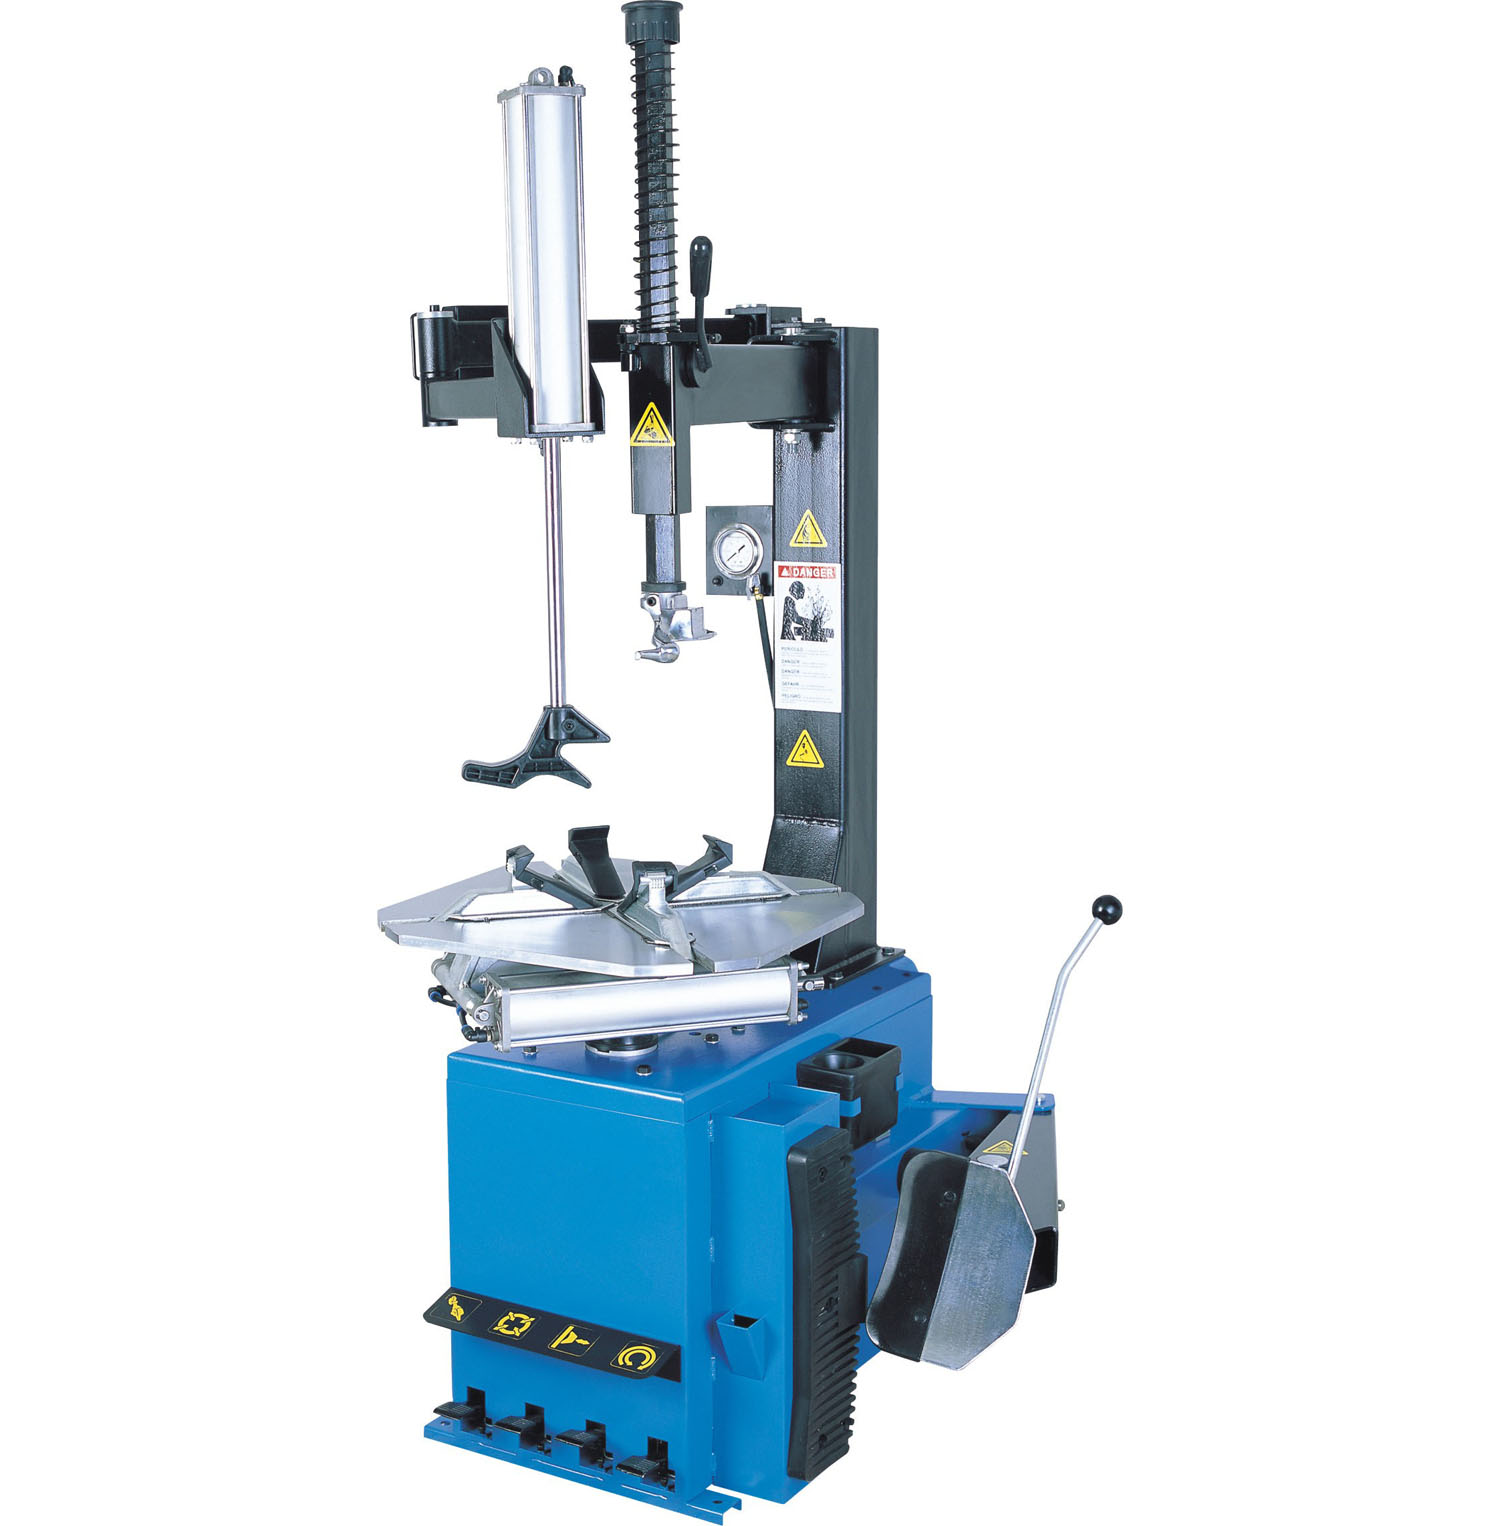 RP-2106 Tire Changer